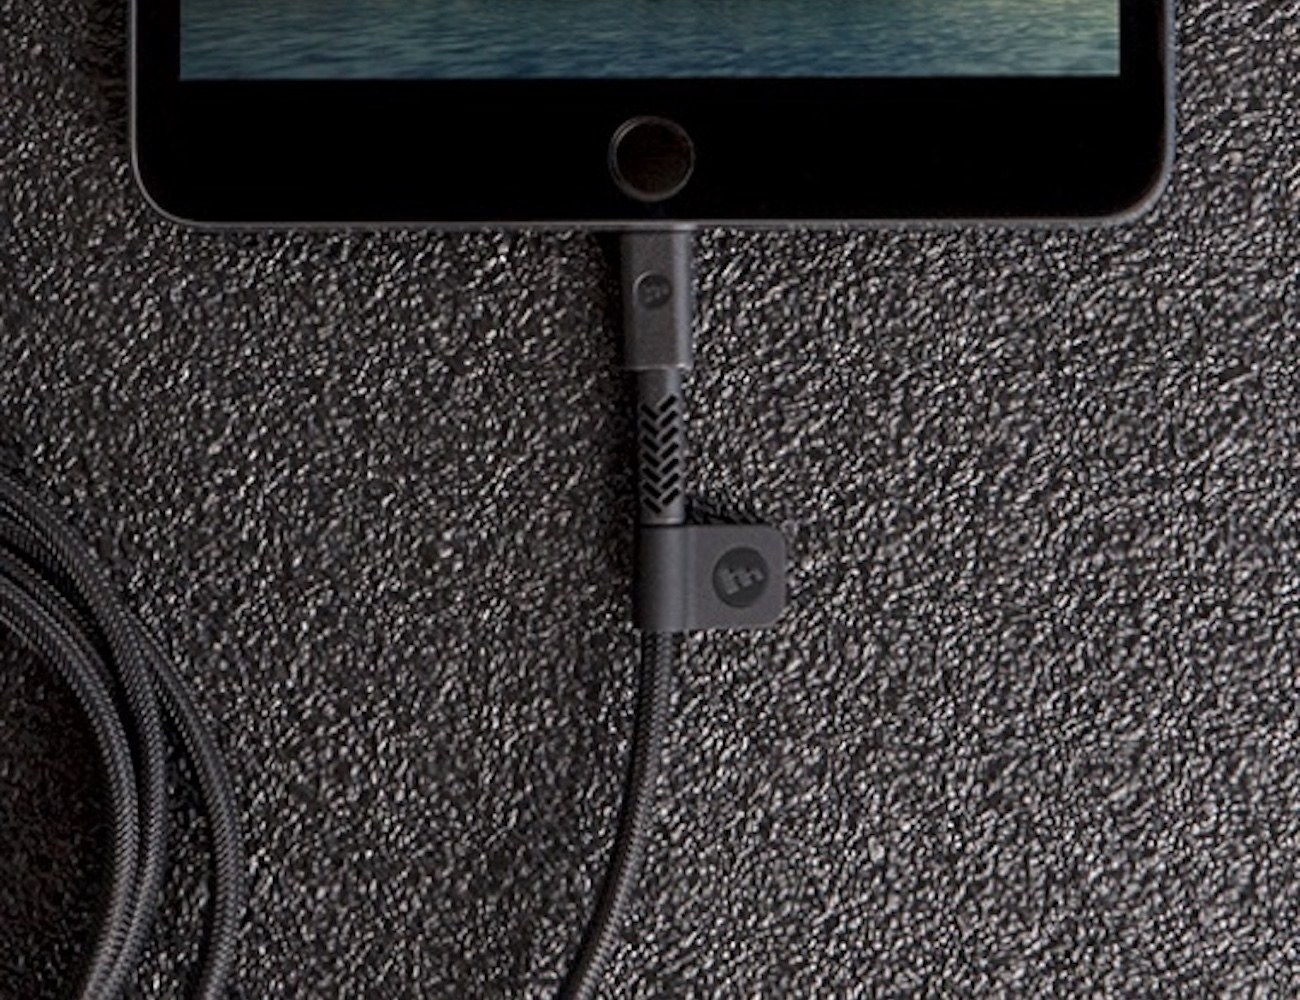 mophie PRO USB-A to Lightning Cable